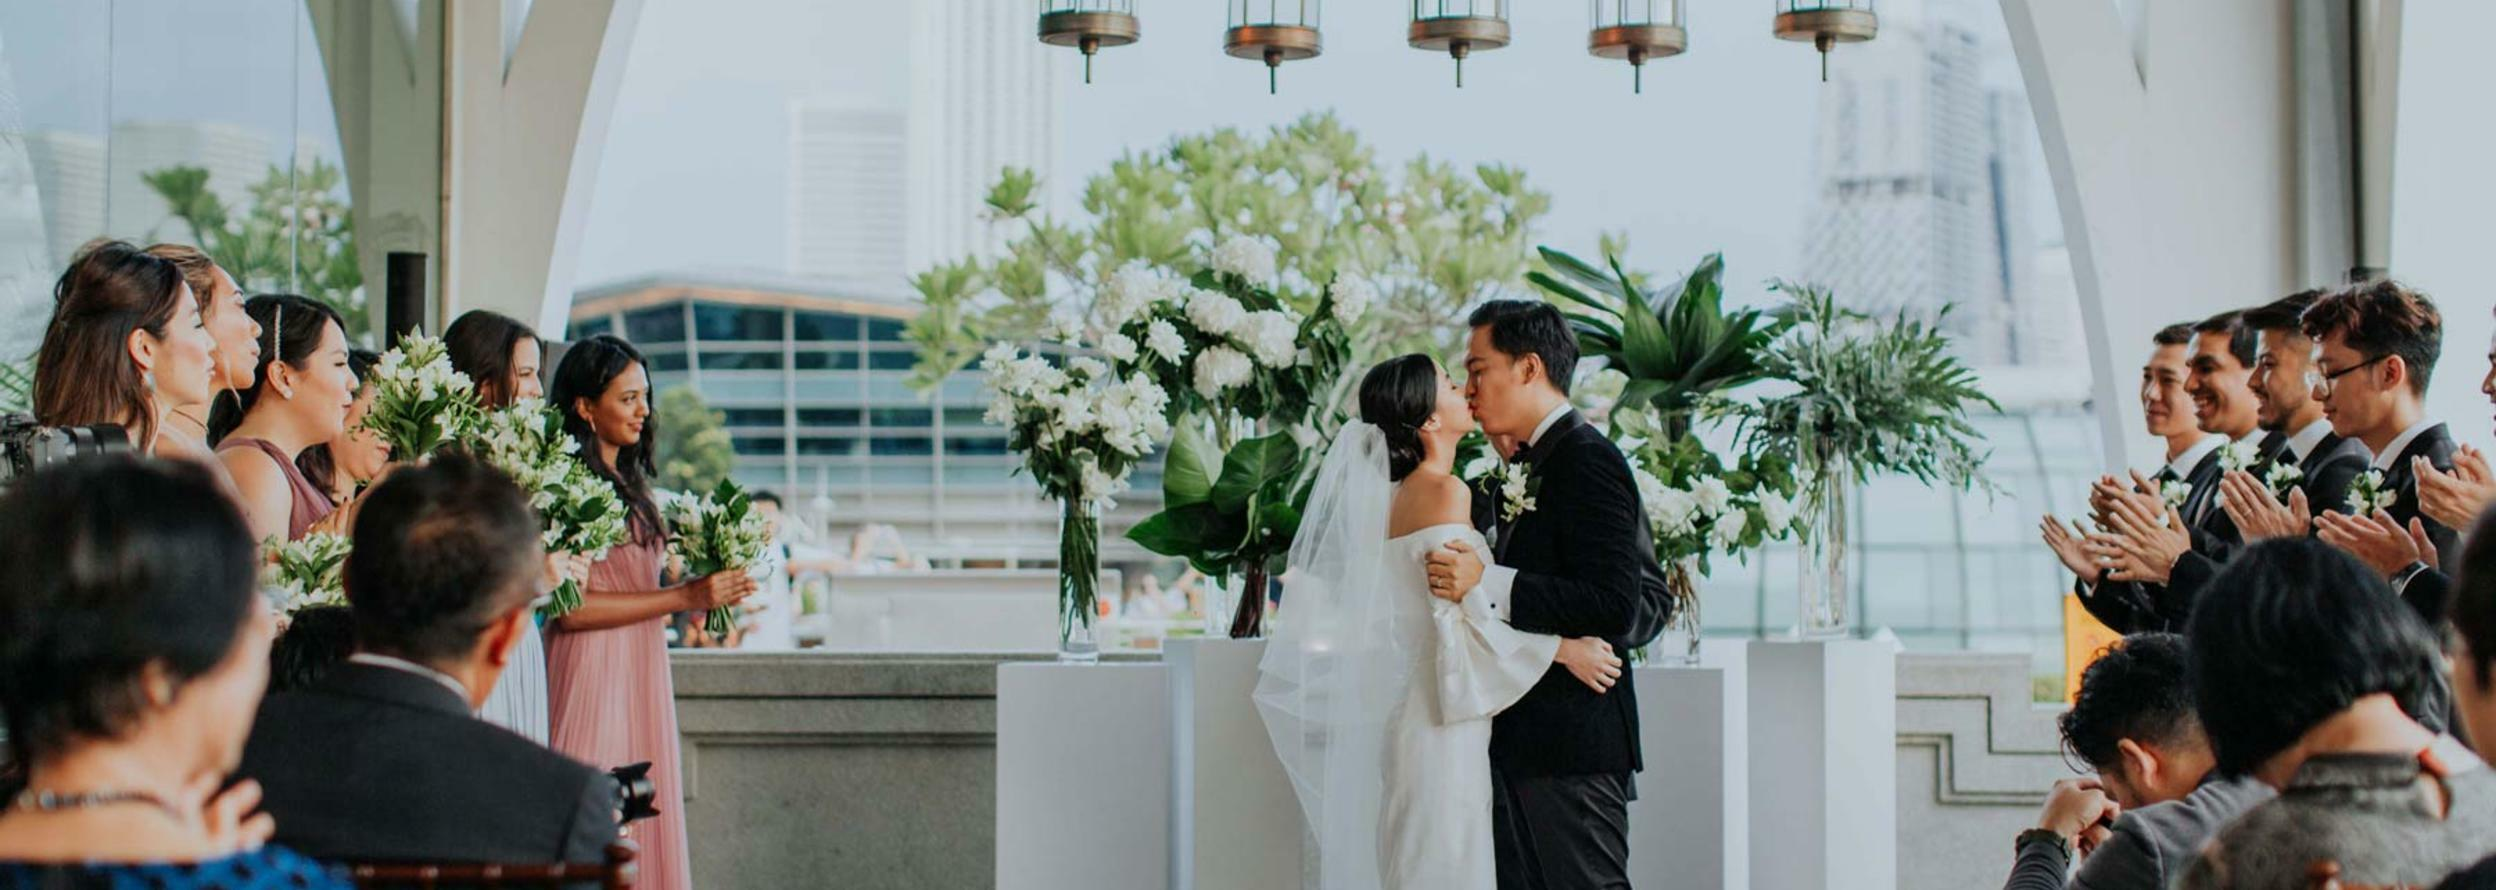 Bride and groom kissing at the wedding ceremony